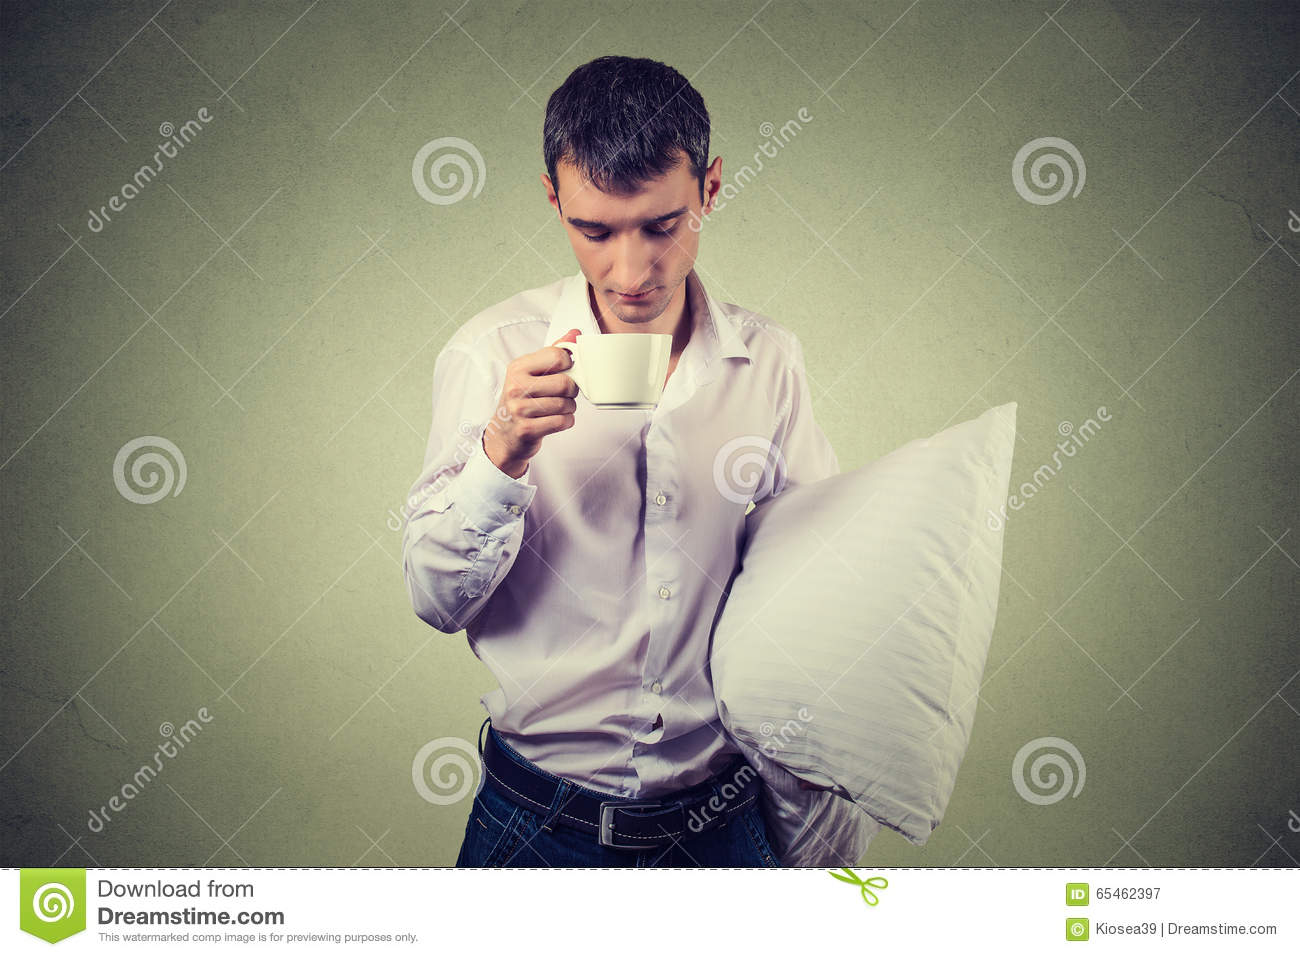 Very tired, falling asleep business man holding a cup of coffee and pillow